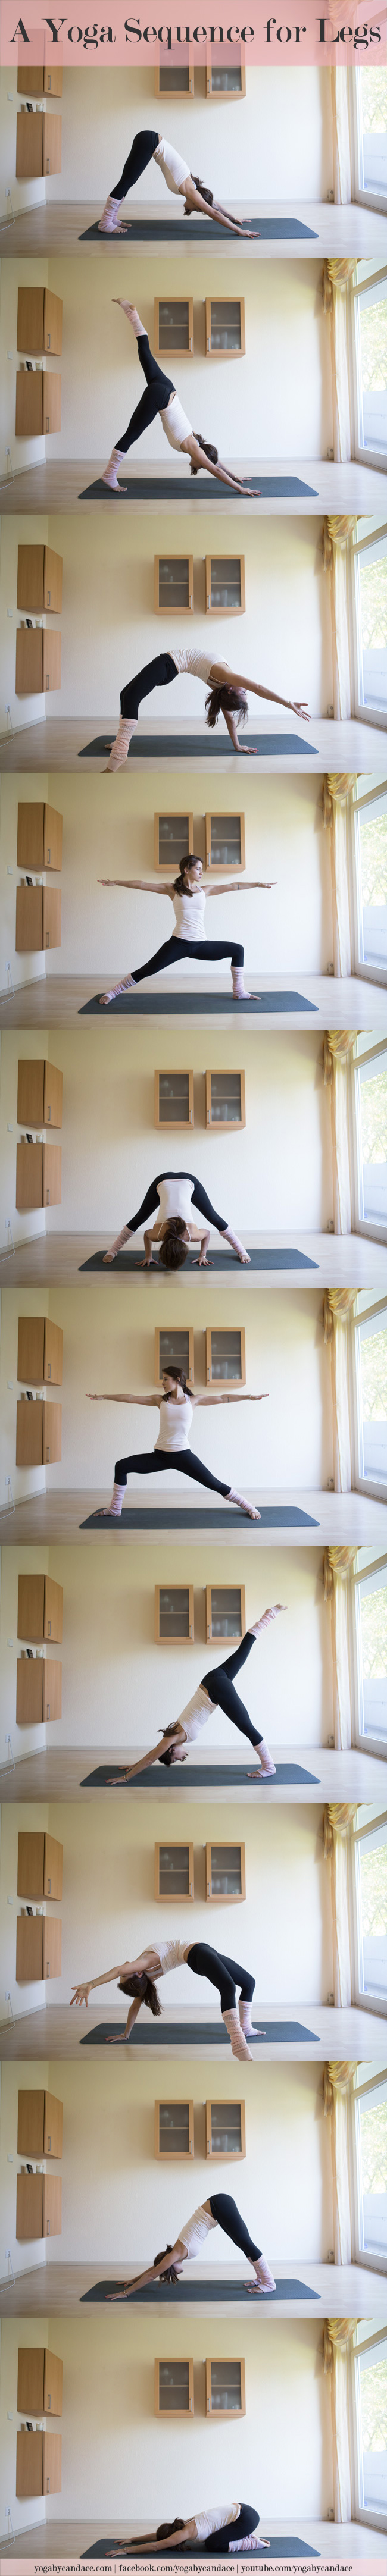 Pin it! A yoga sequence for legs you can do right from home.